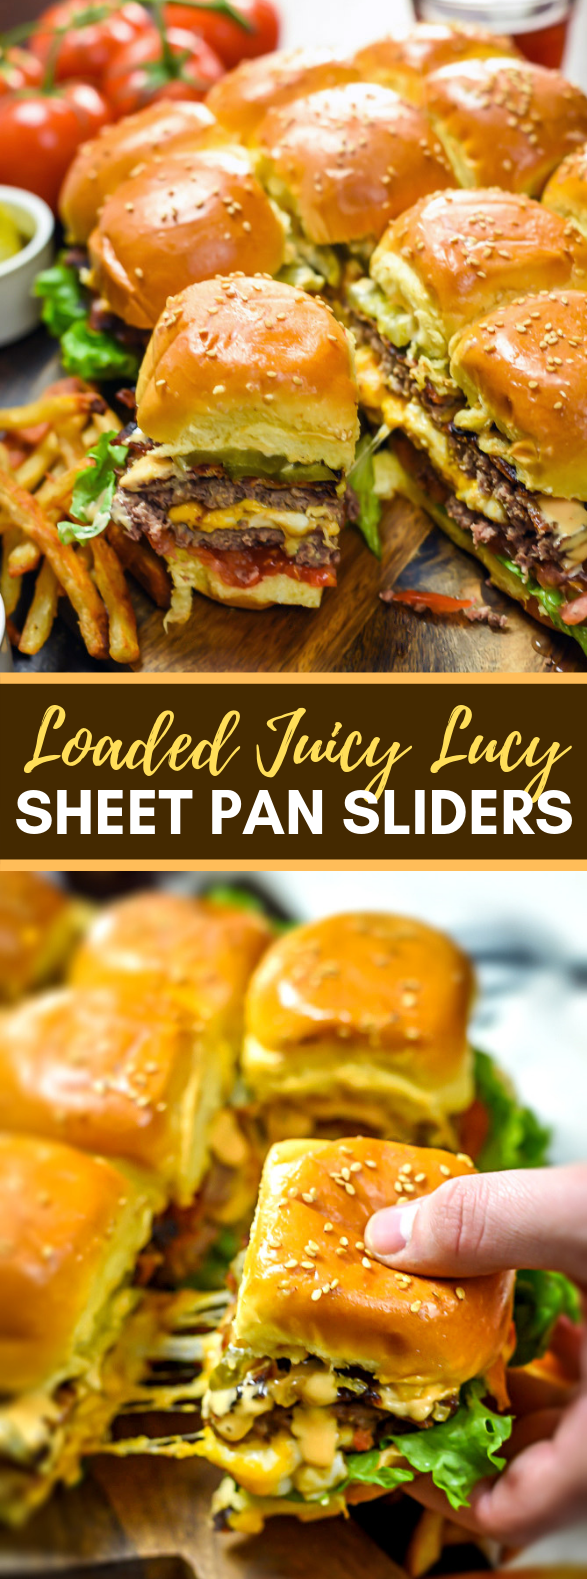 LOADED JUICY LUCY SHEET PAN SLIDERS #lunch #dinner